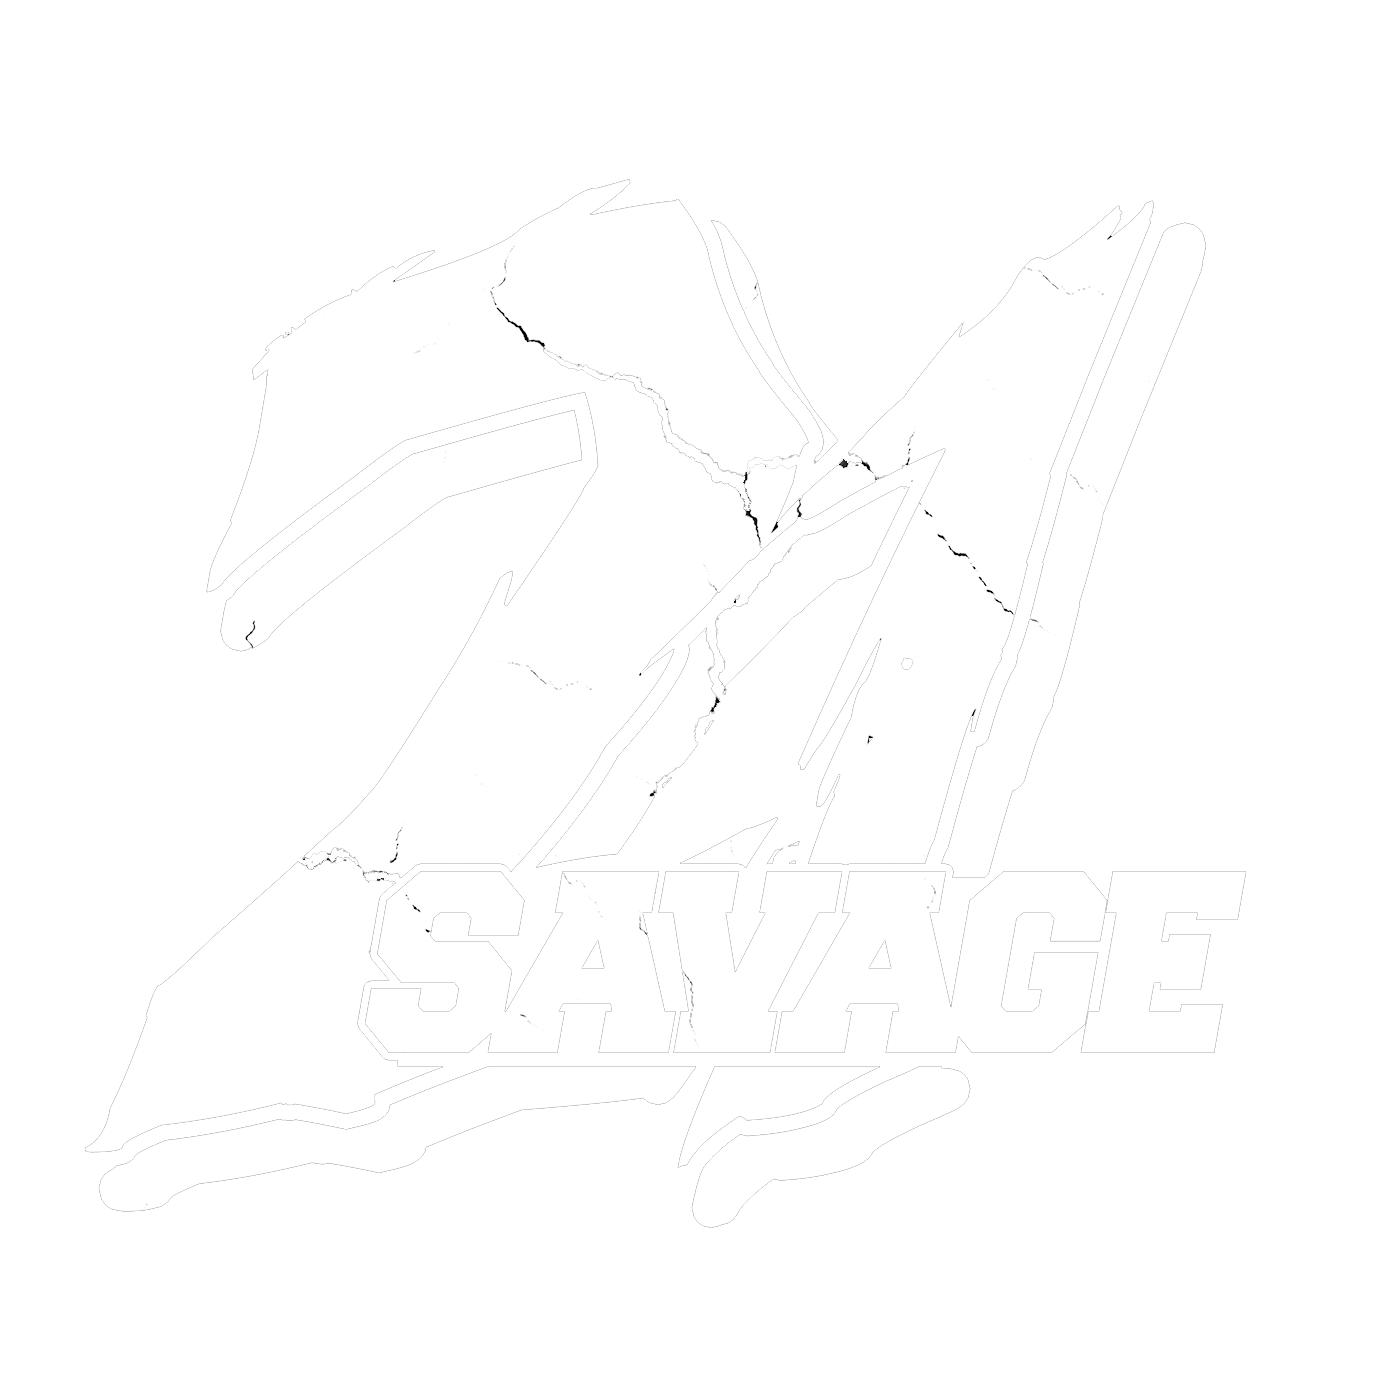 hq savage wallpapers cartoon 21 savage 1400x1400 download hd wallpaper wallpapertip hq savage wallpapers cartoon 21